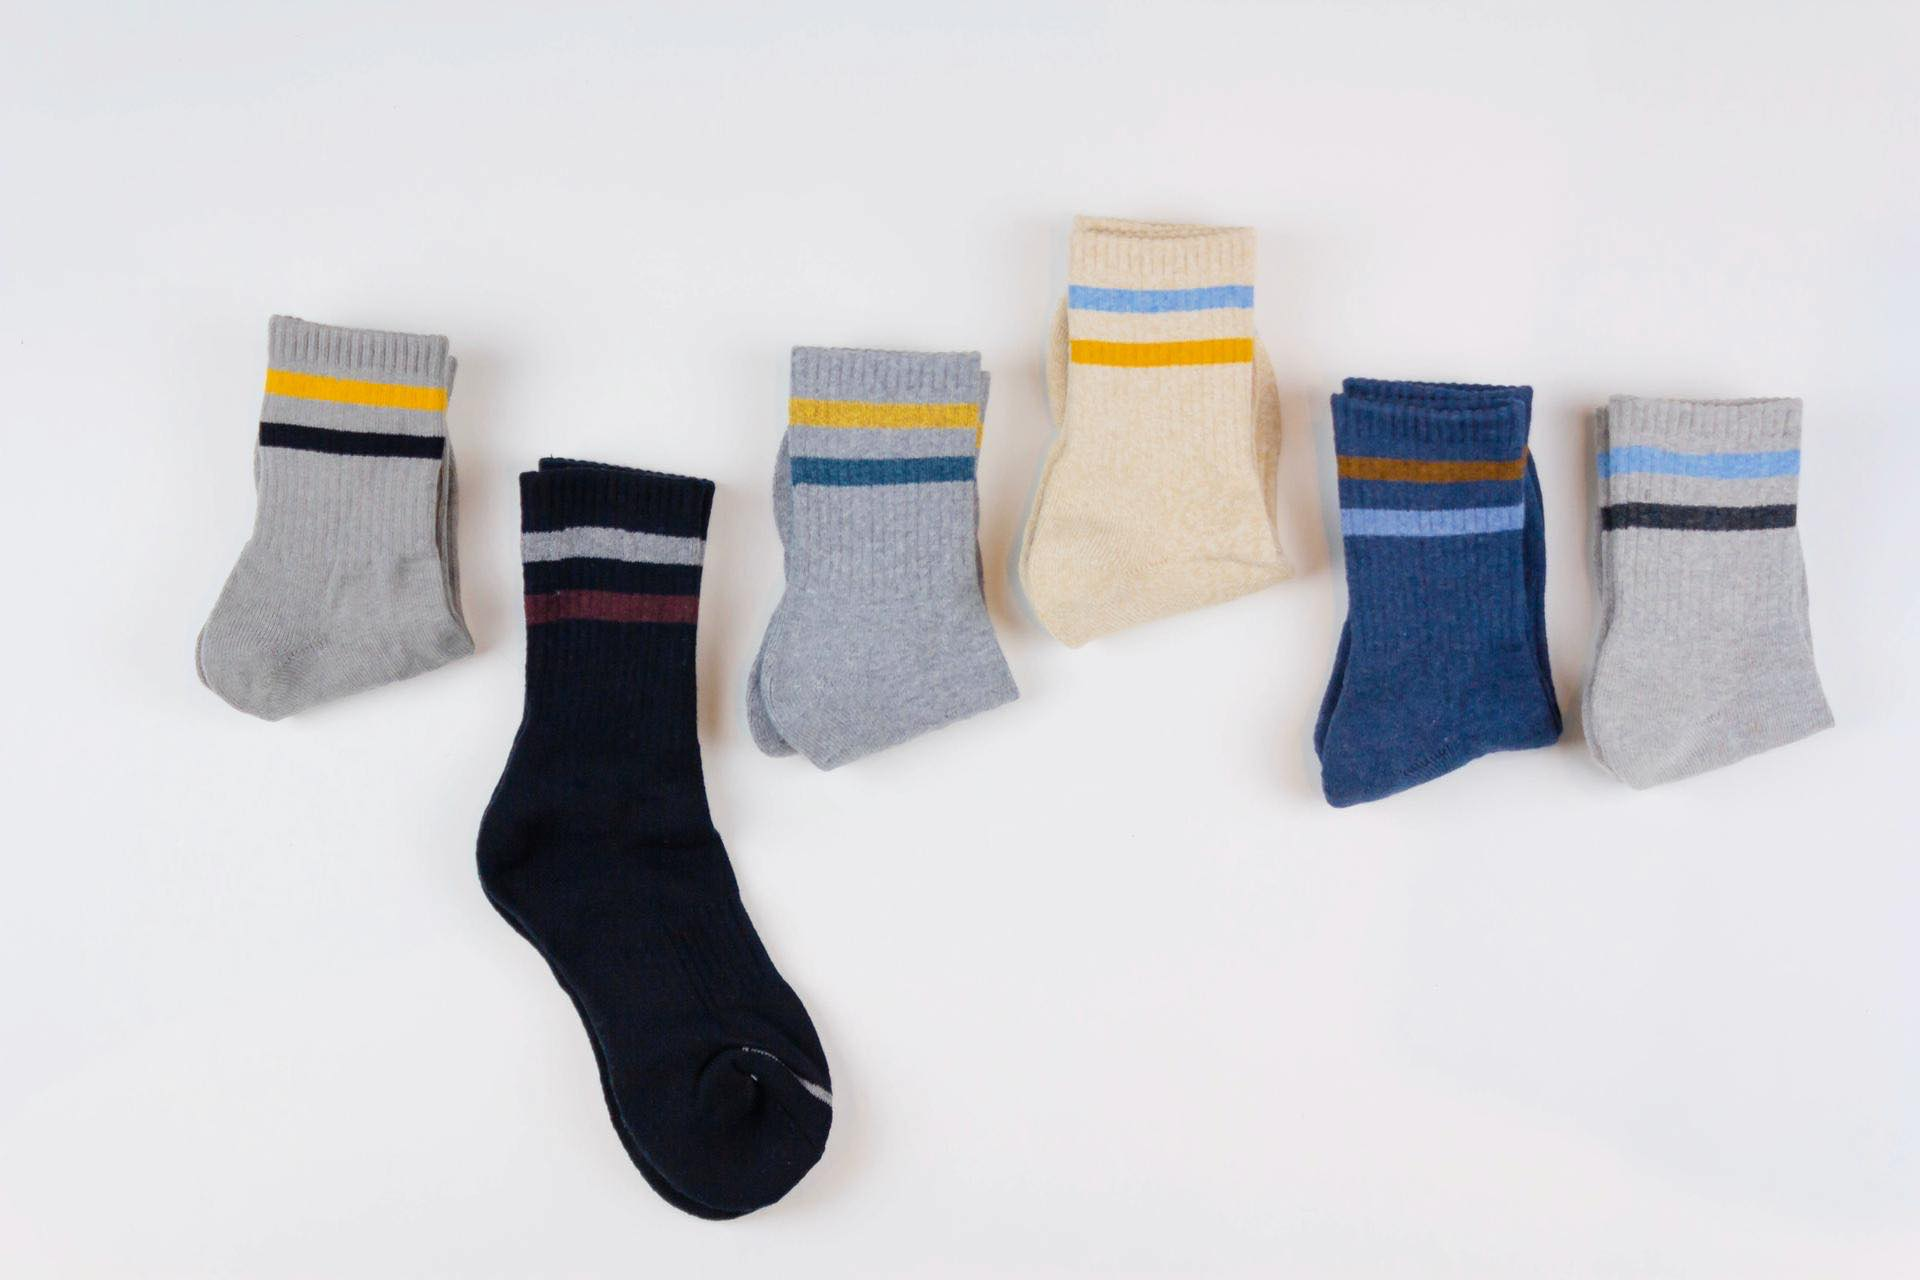 1. Unice Socks Tennis